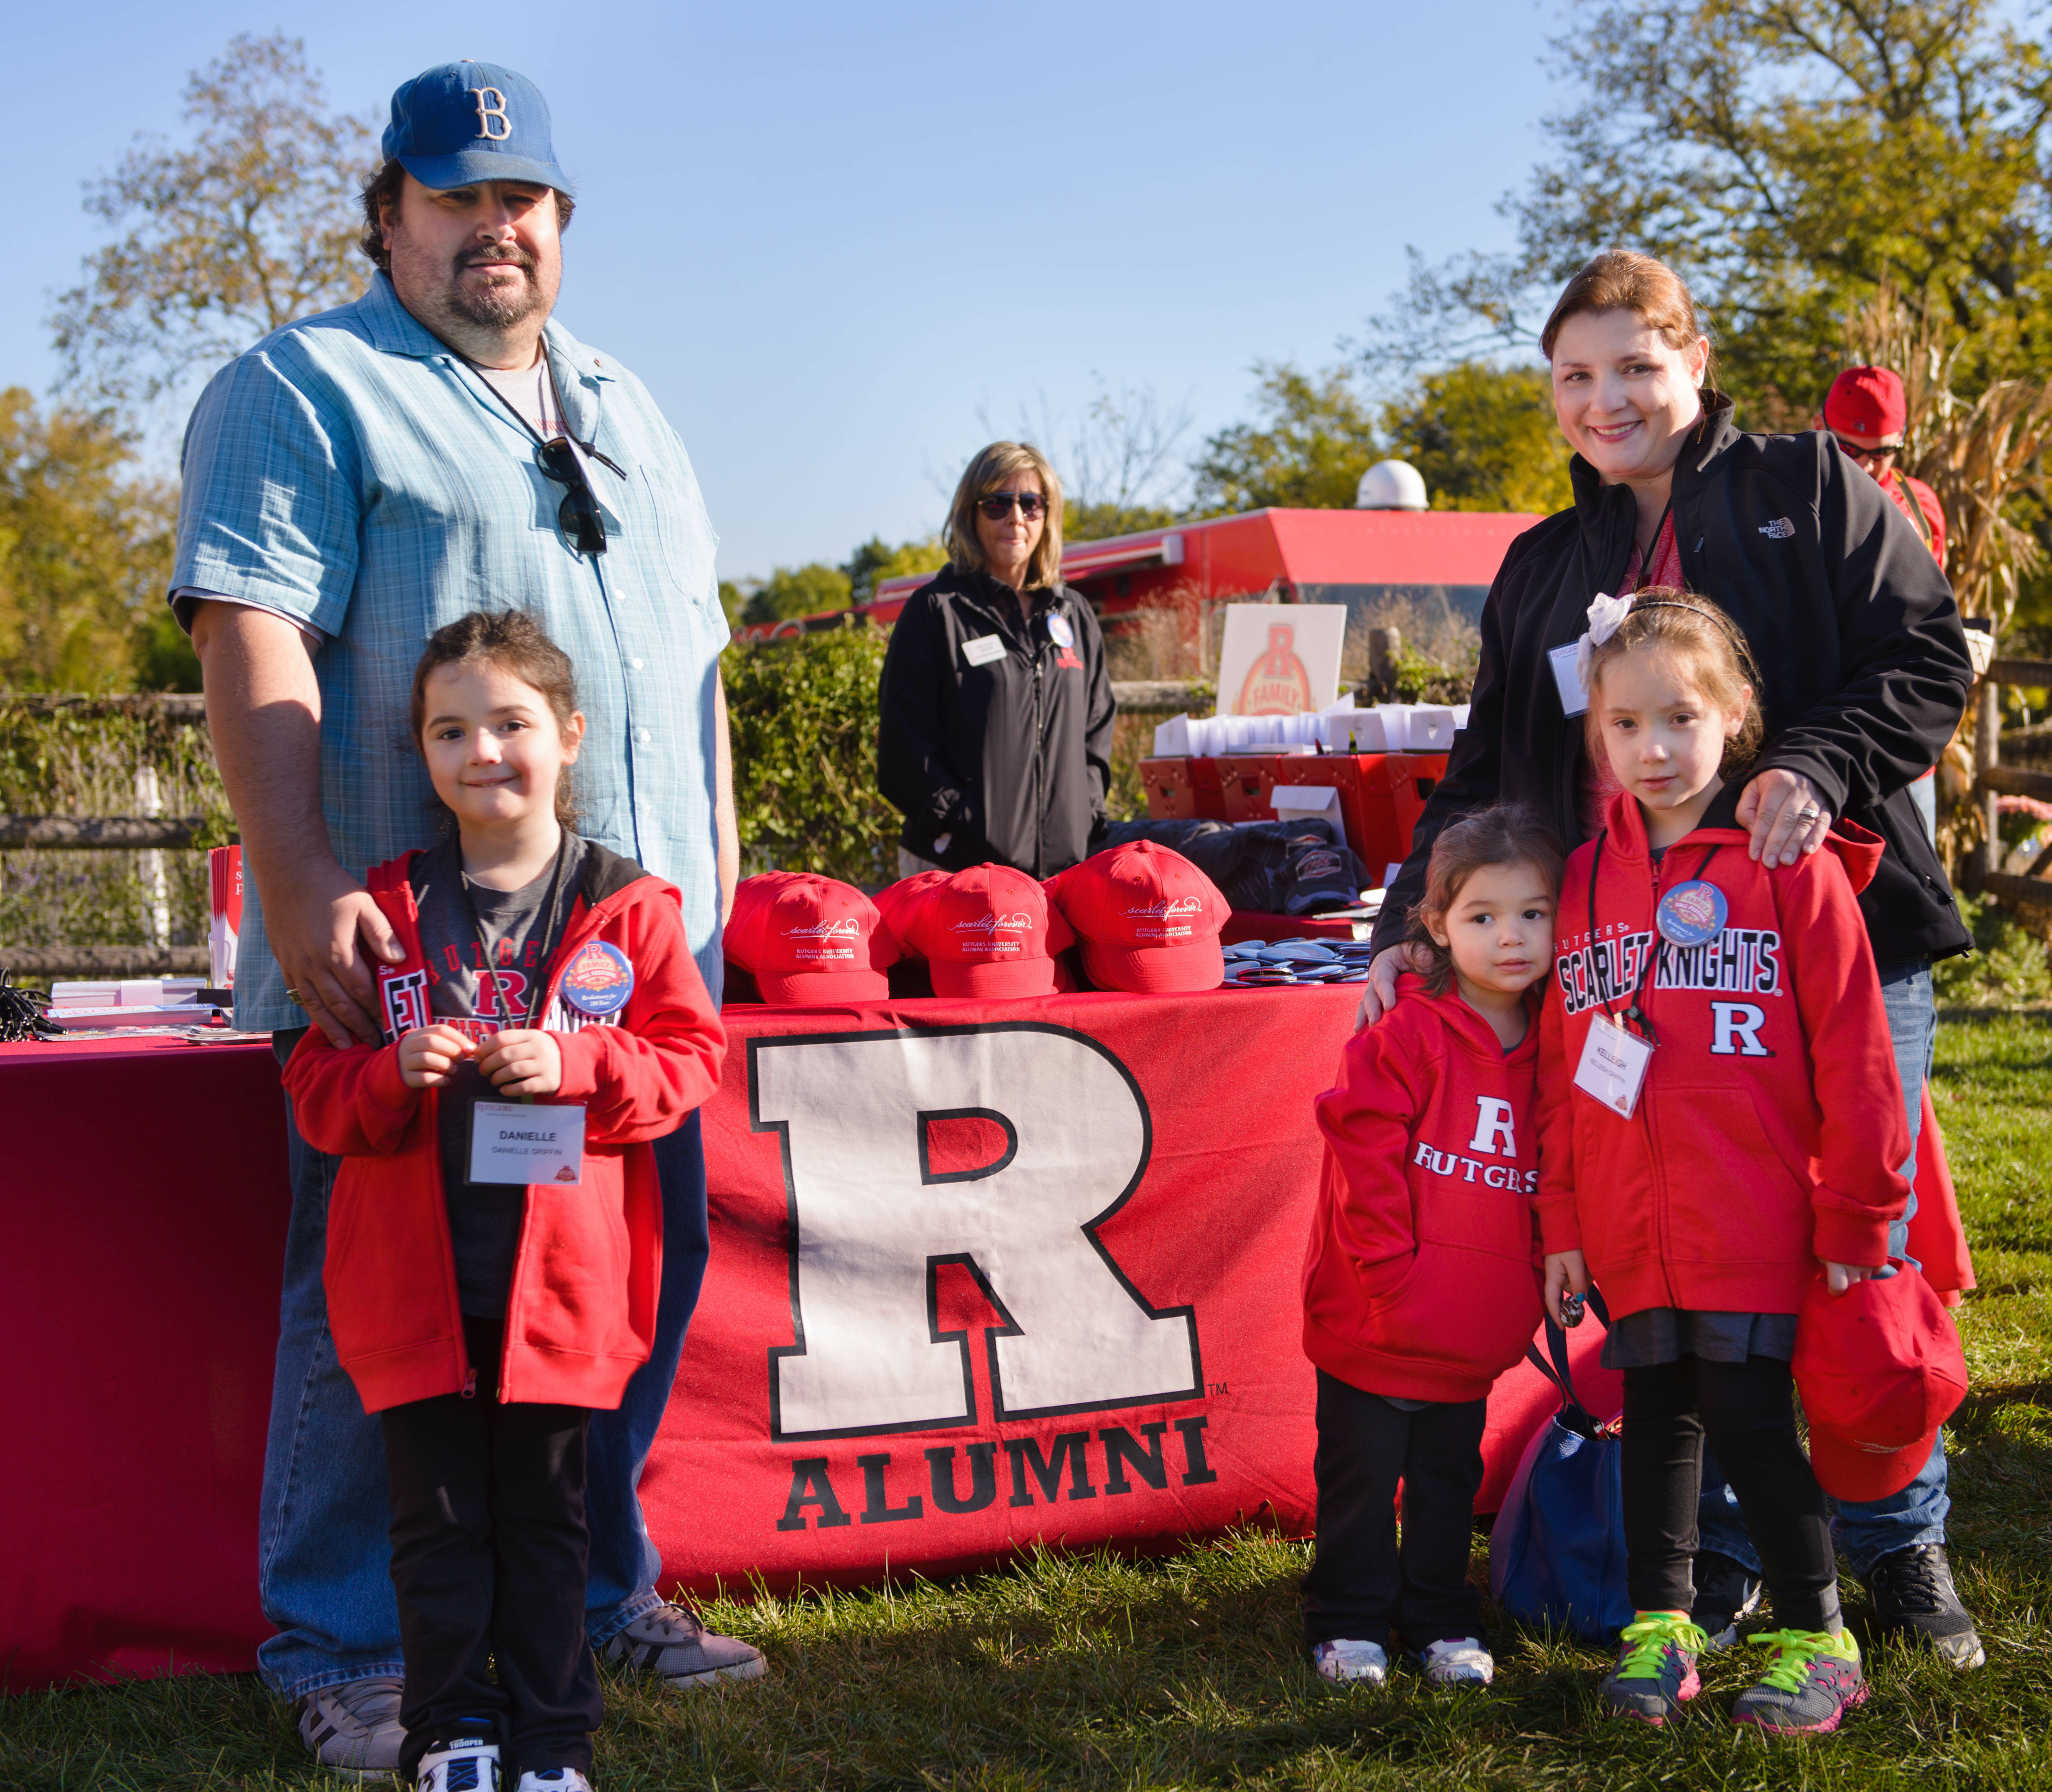 67d2ee8966bf9b26d093_Rutgers_Homecoming_credit_Fred_Stucker.jpg